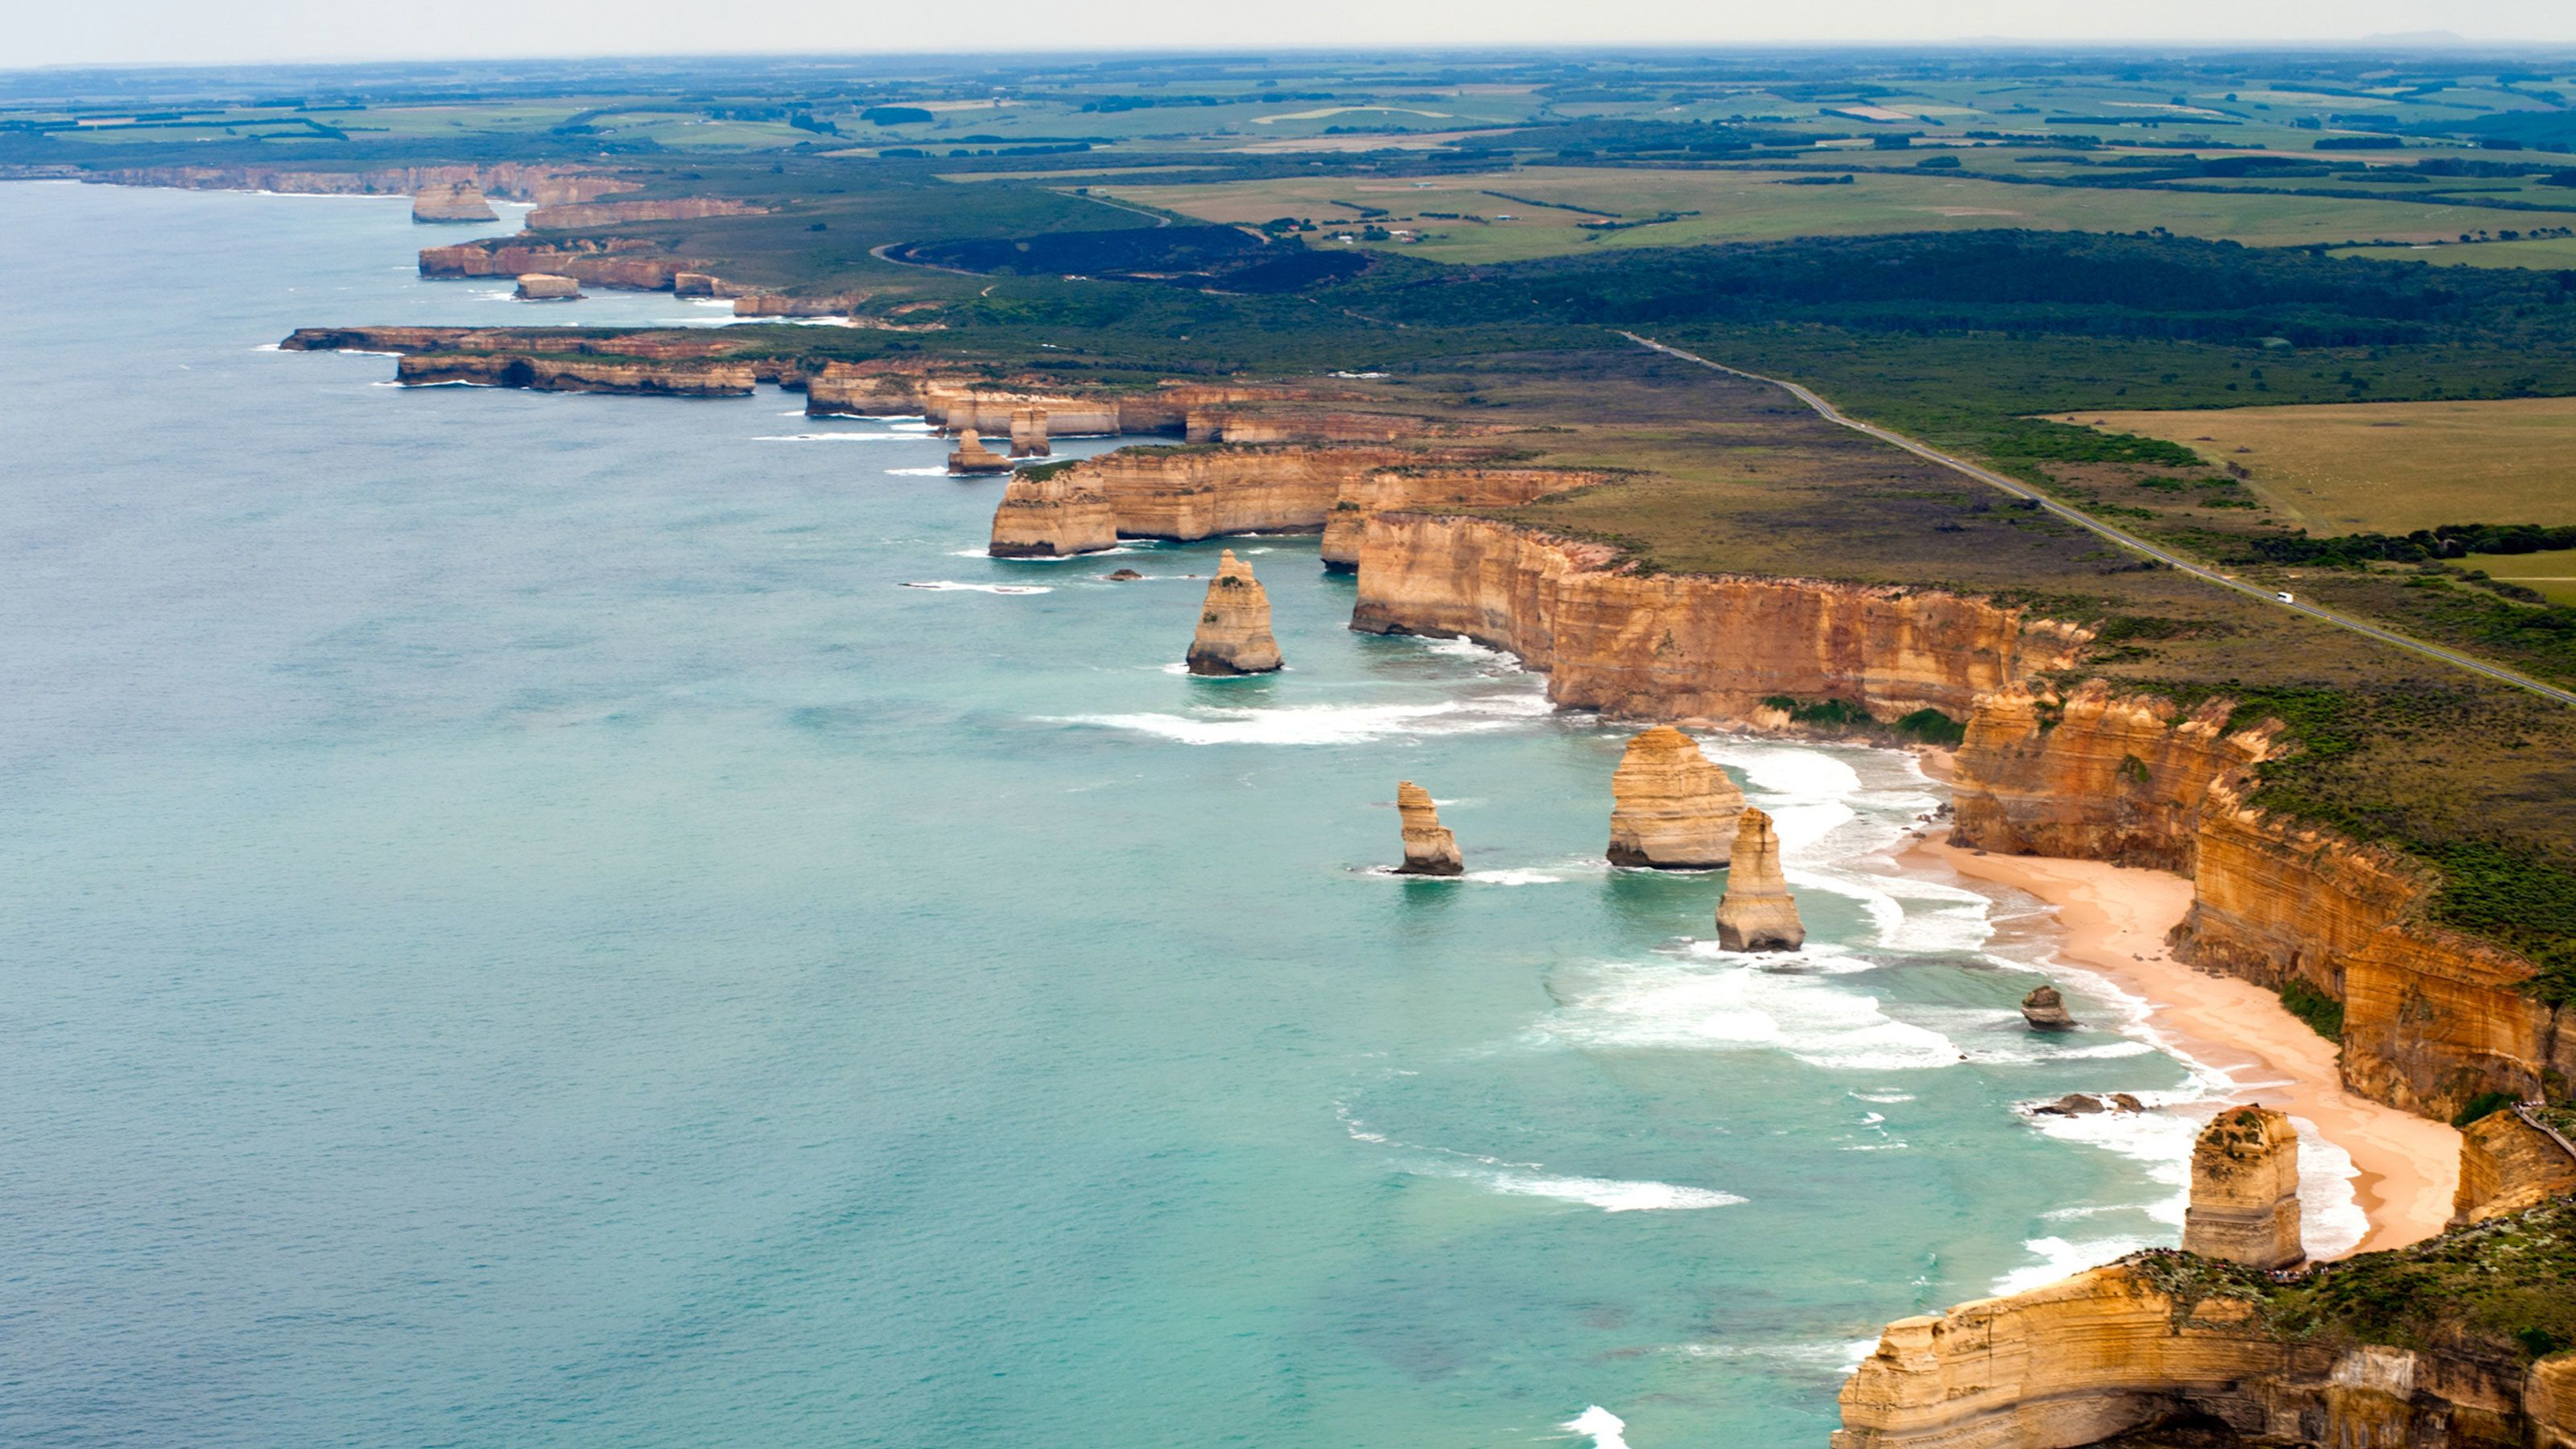 Aerial view of the coast cliffs and the Twelve Apostles rock stacks along the Great Ocean Road in Melbourne